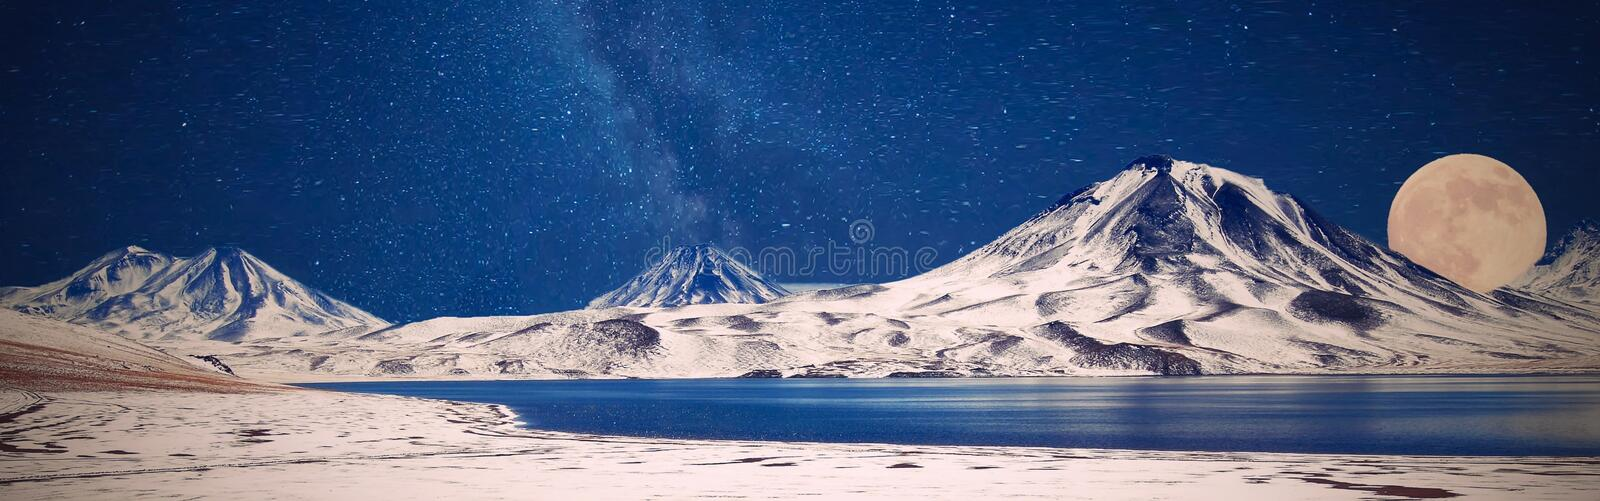 Mountains Snow Winter Full Moon royalty free stock photo